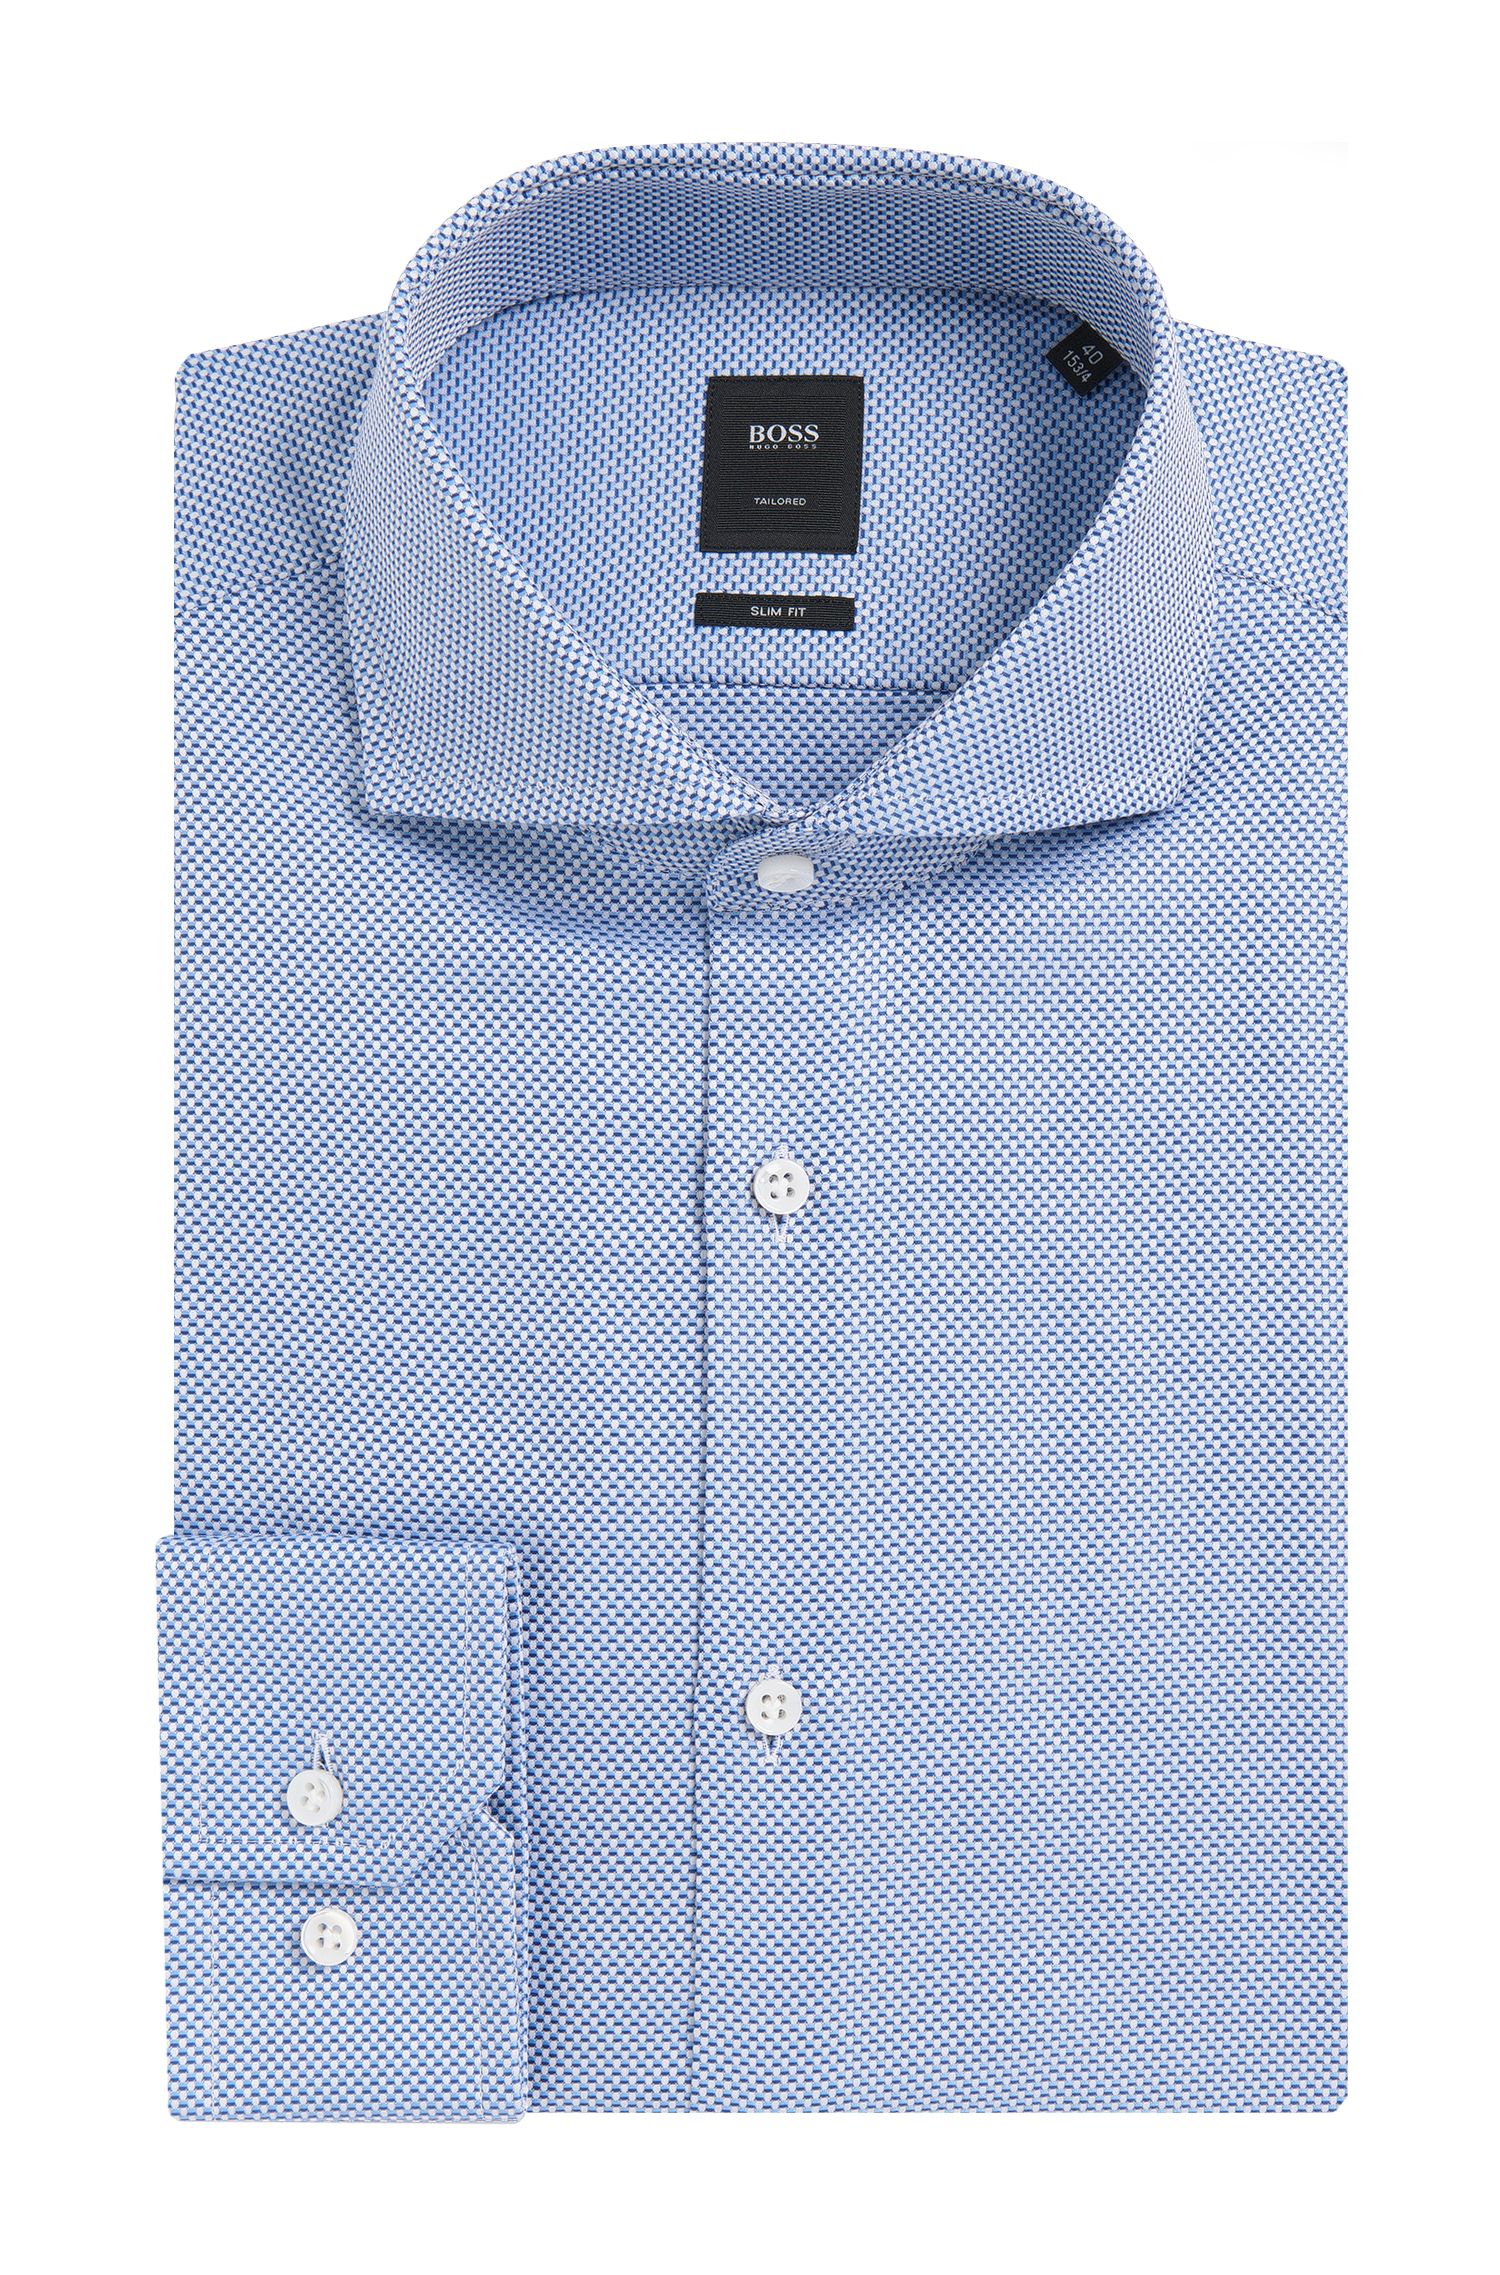 'T-Christo' | Slim Fit, Italian Cotton Dress Shirt